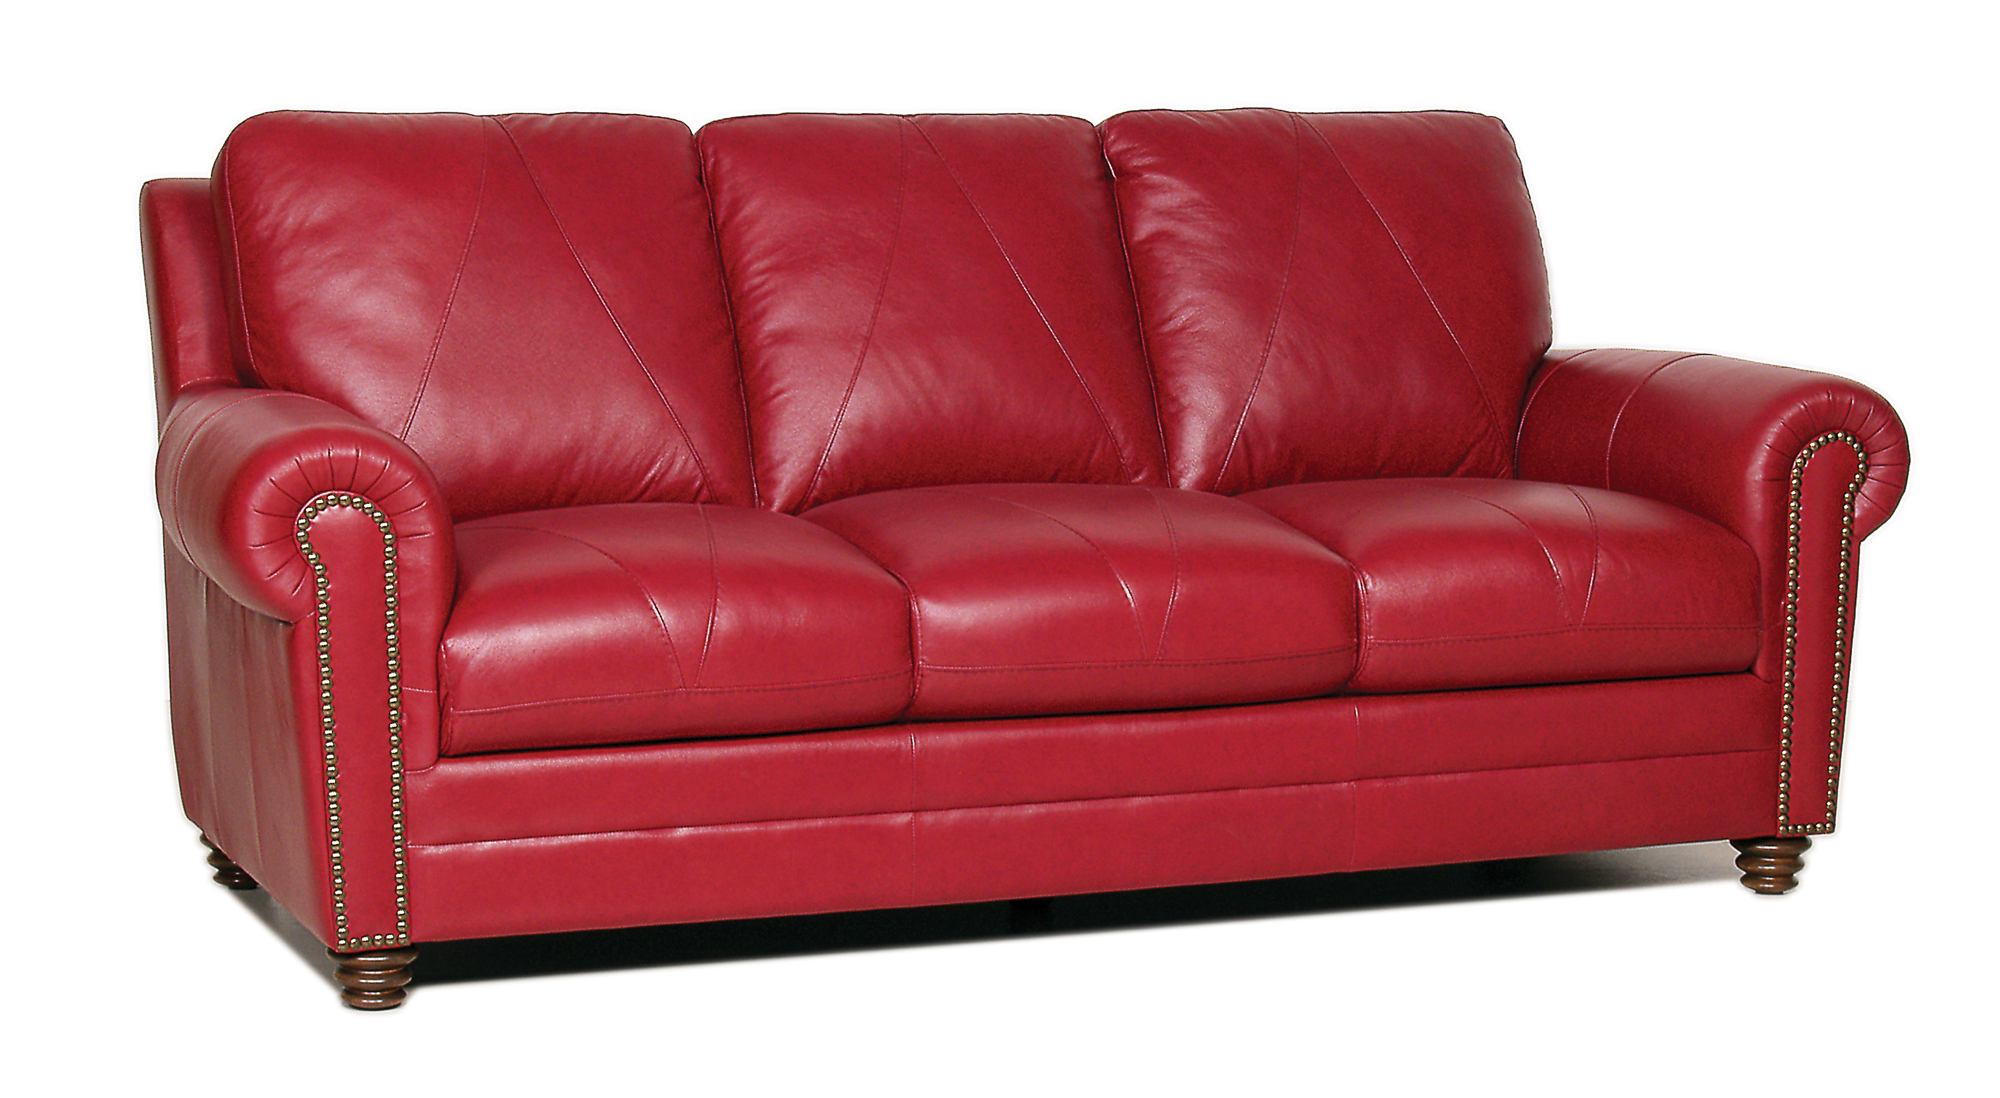 New Luke Leather Weston Cherry Red Italian Leather 3pc Set Sofa And 2 Chairs Ebay